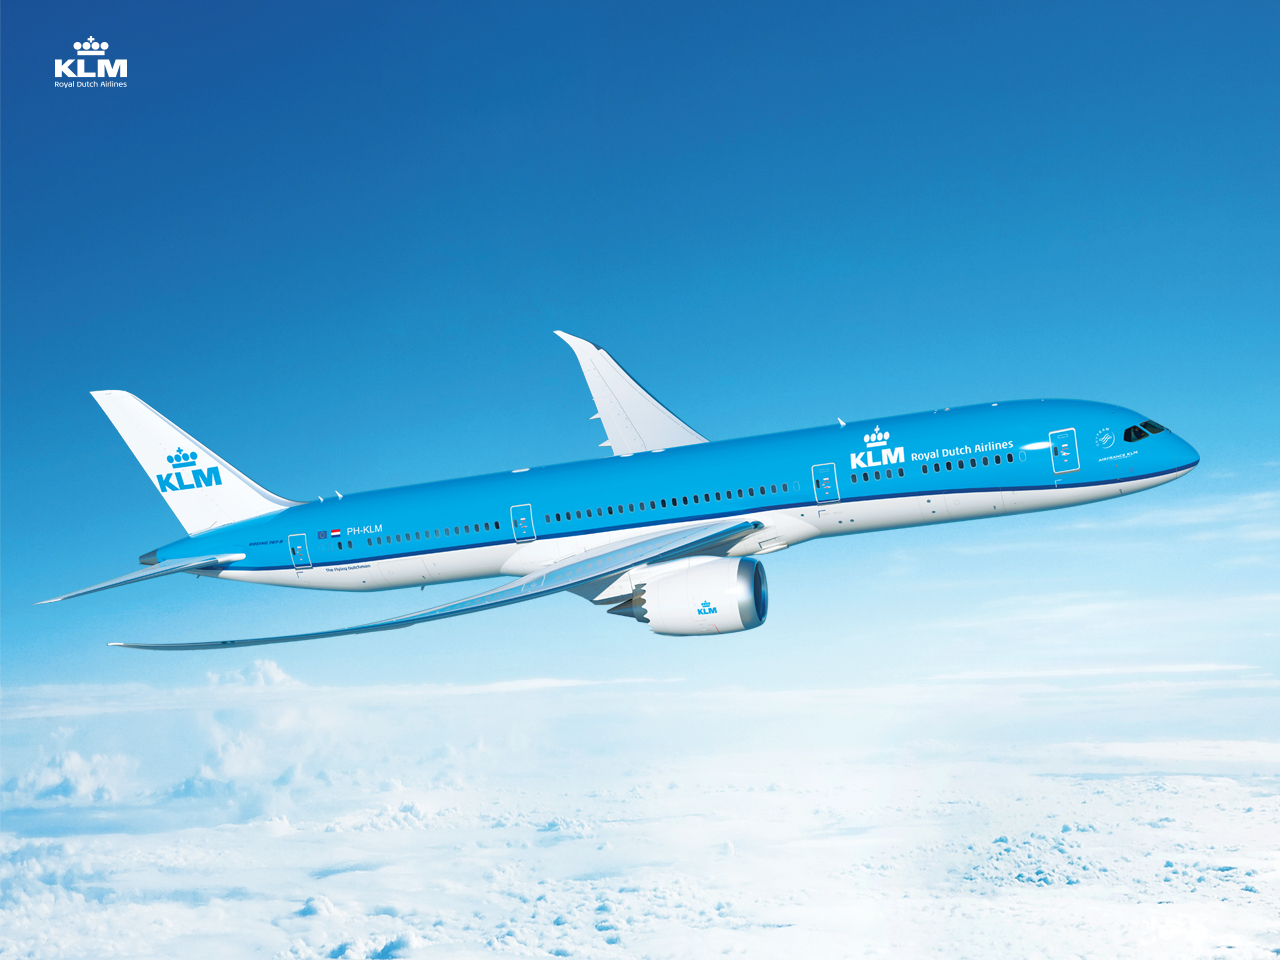 Picture: KLM